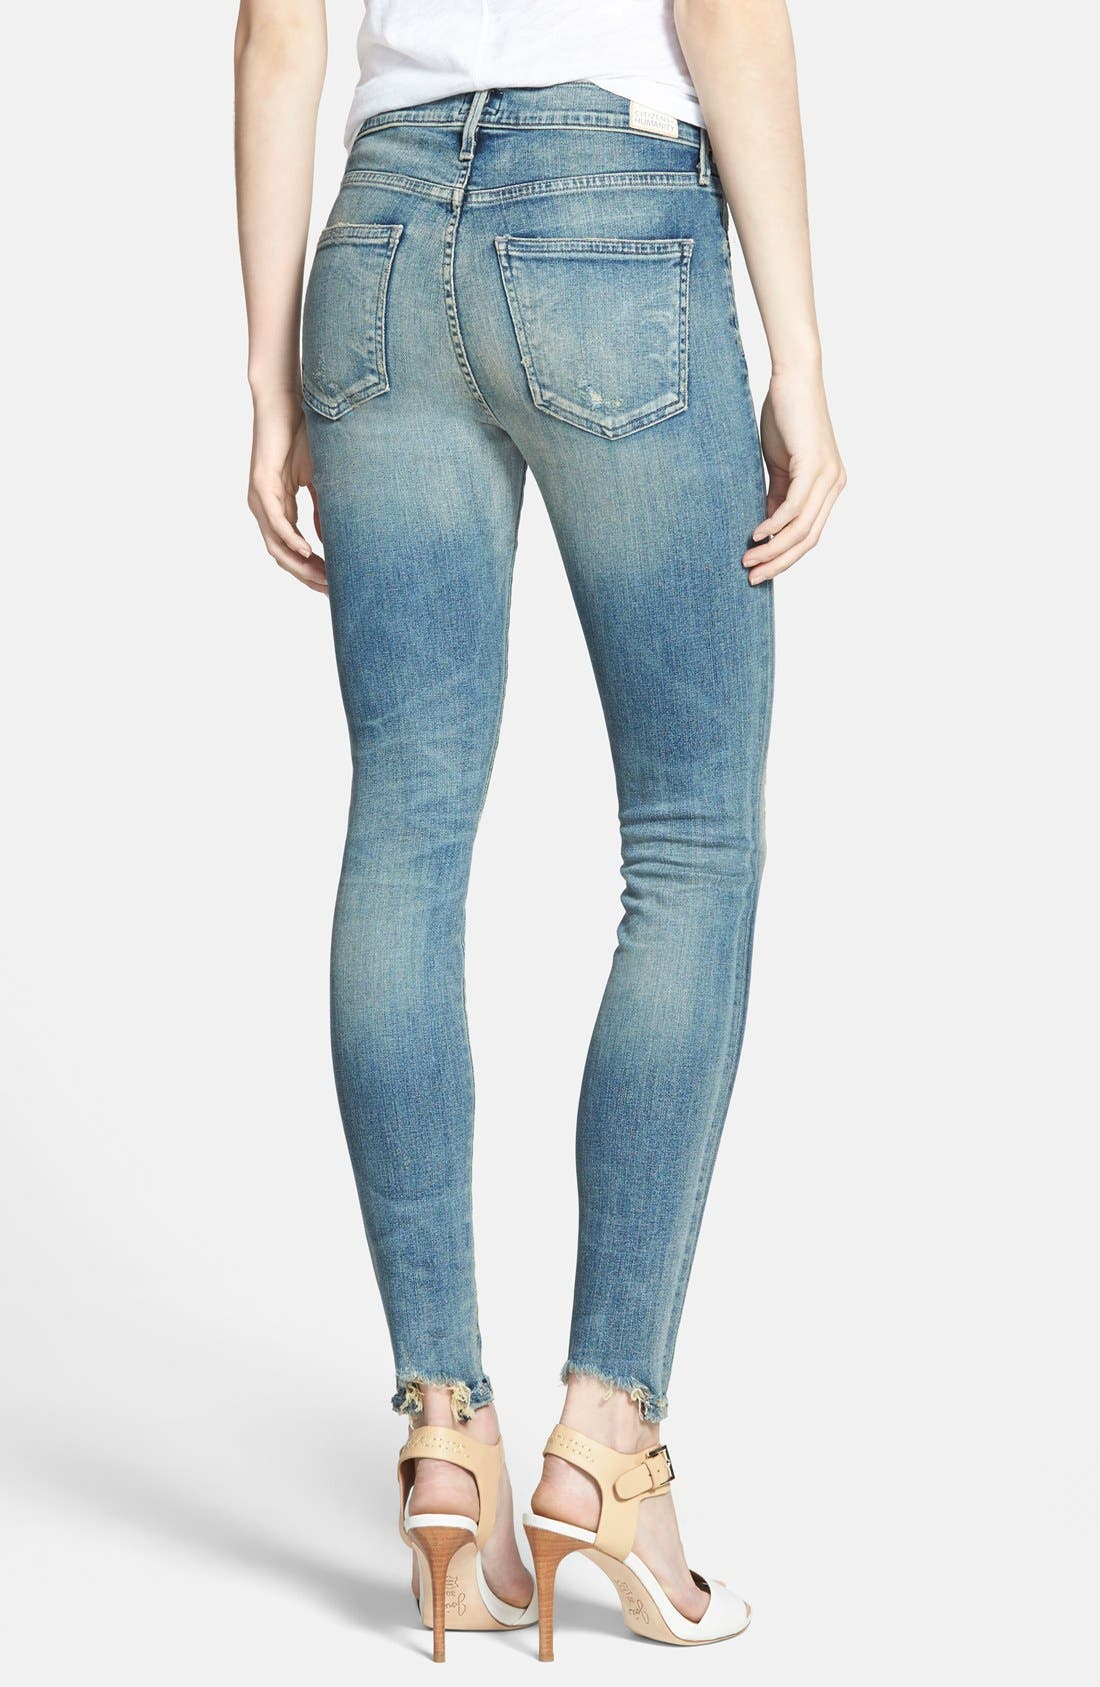 Alternate Image 2  - Citizens of Humanity 'Rocket' High Rise Skinny Jeans (Stage Coach)